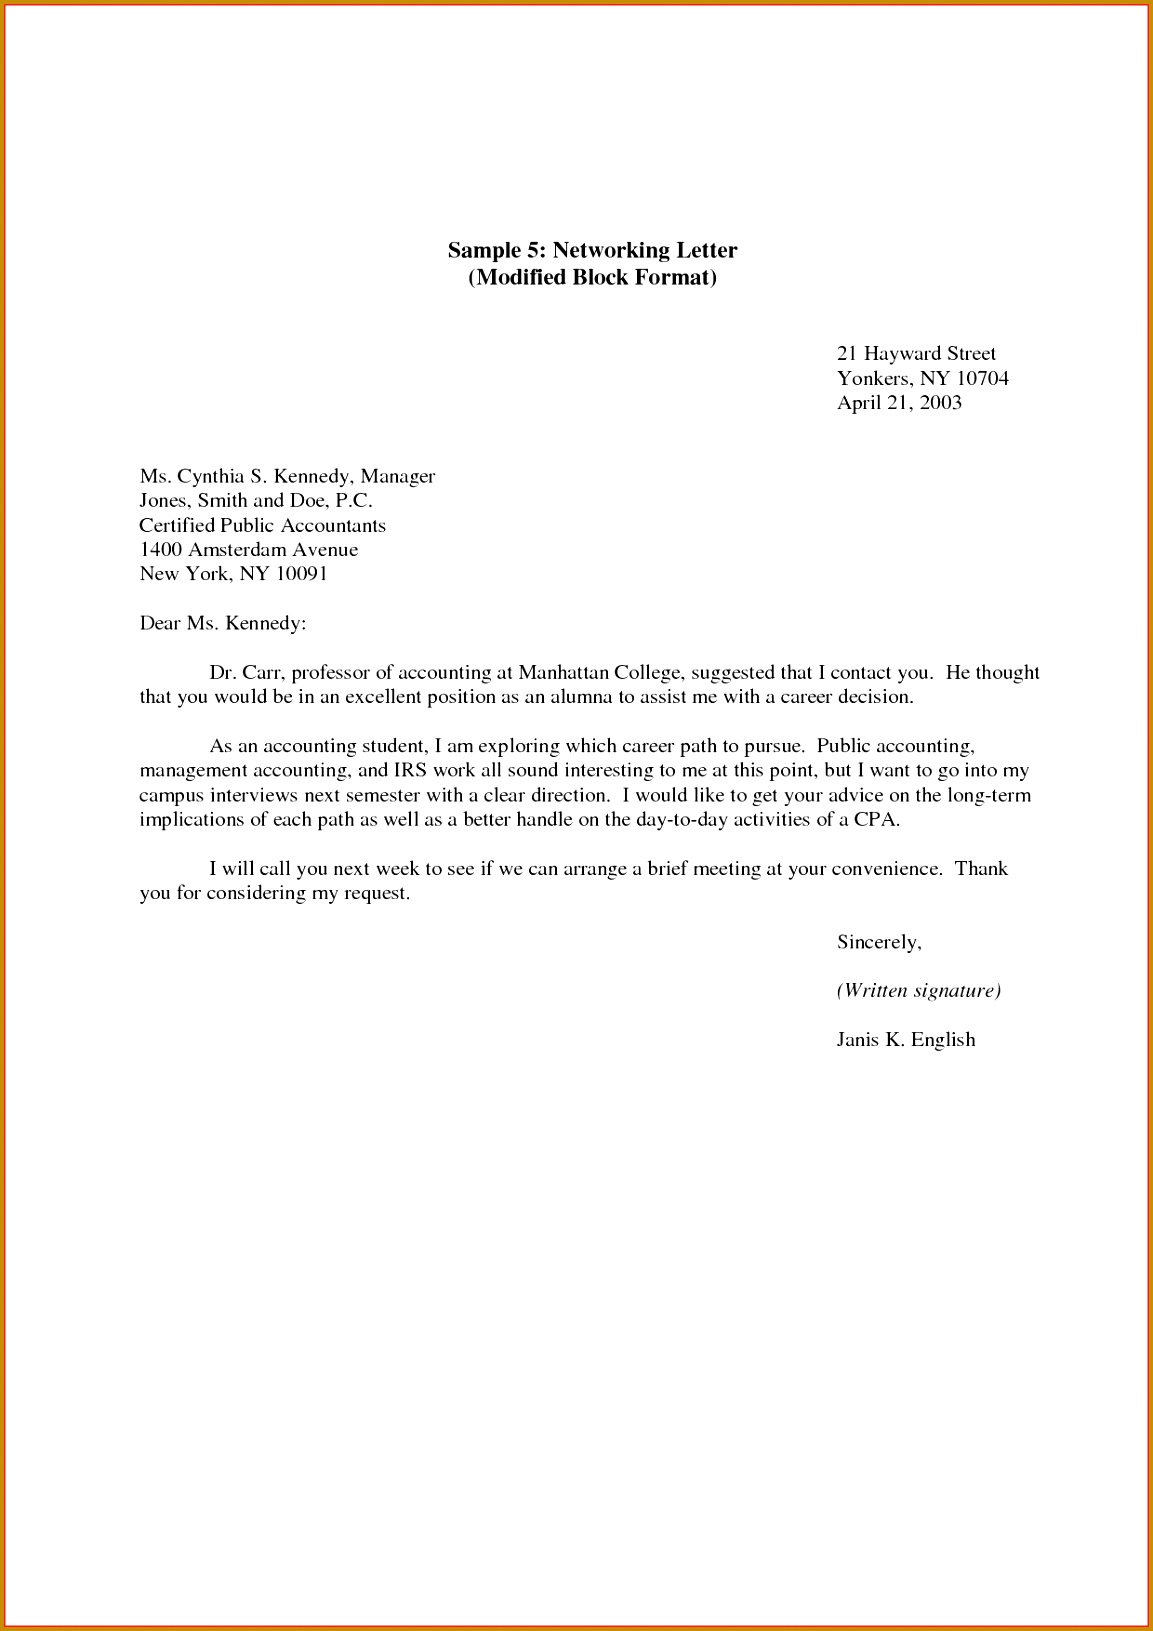 Example Business Letter Modified Block Style 11531631